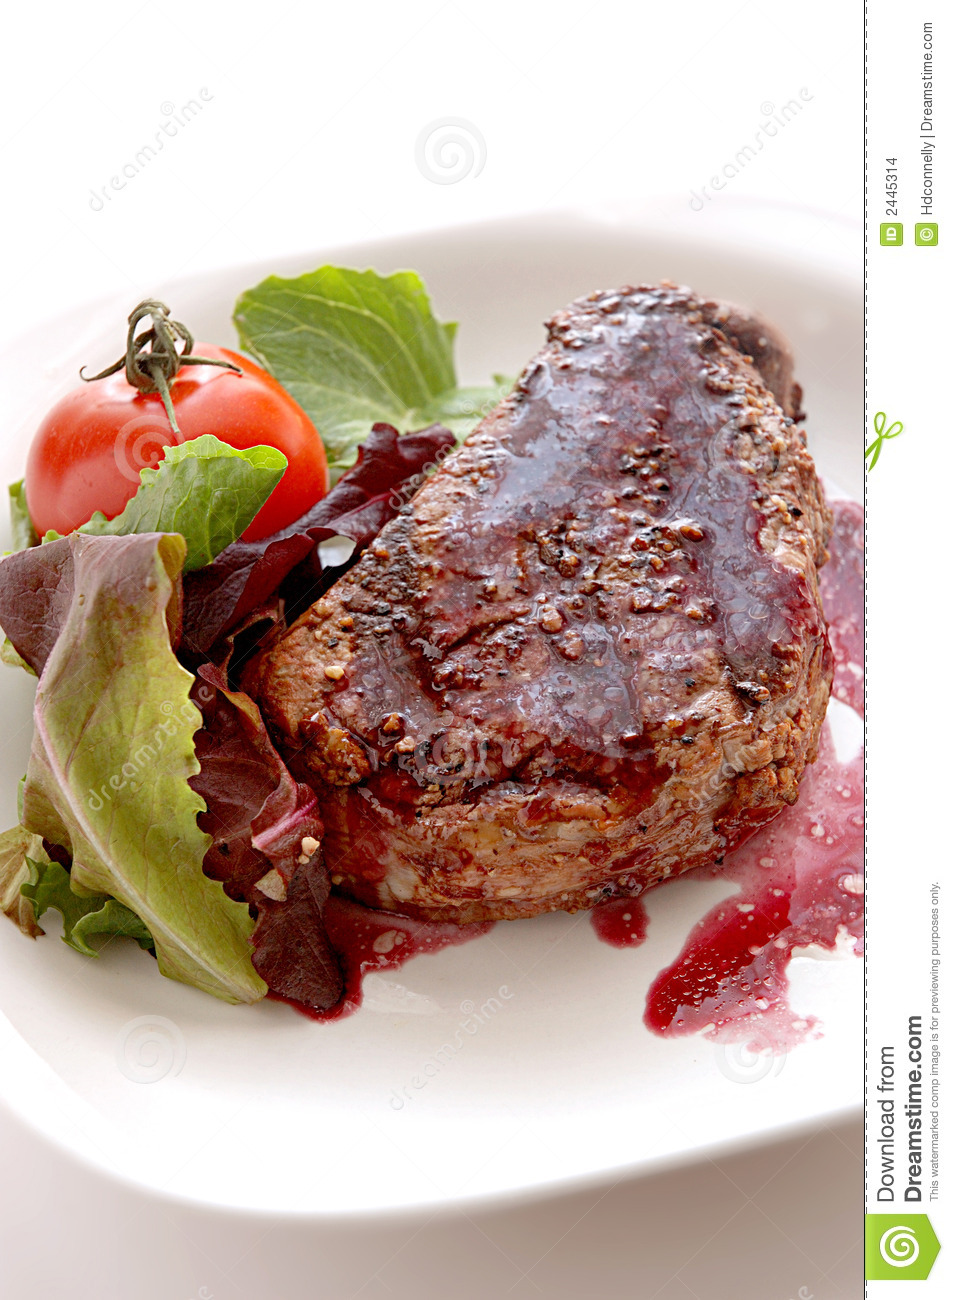 Filet Mignon Stock Images - Image: 2445314